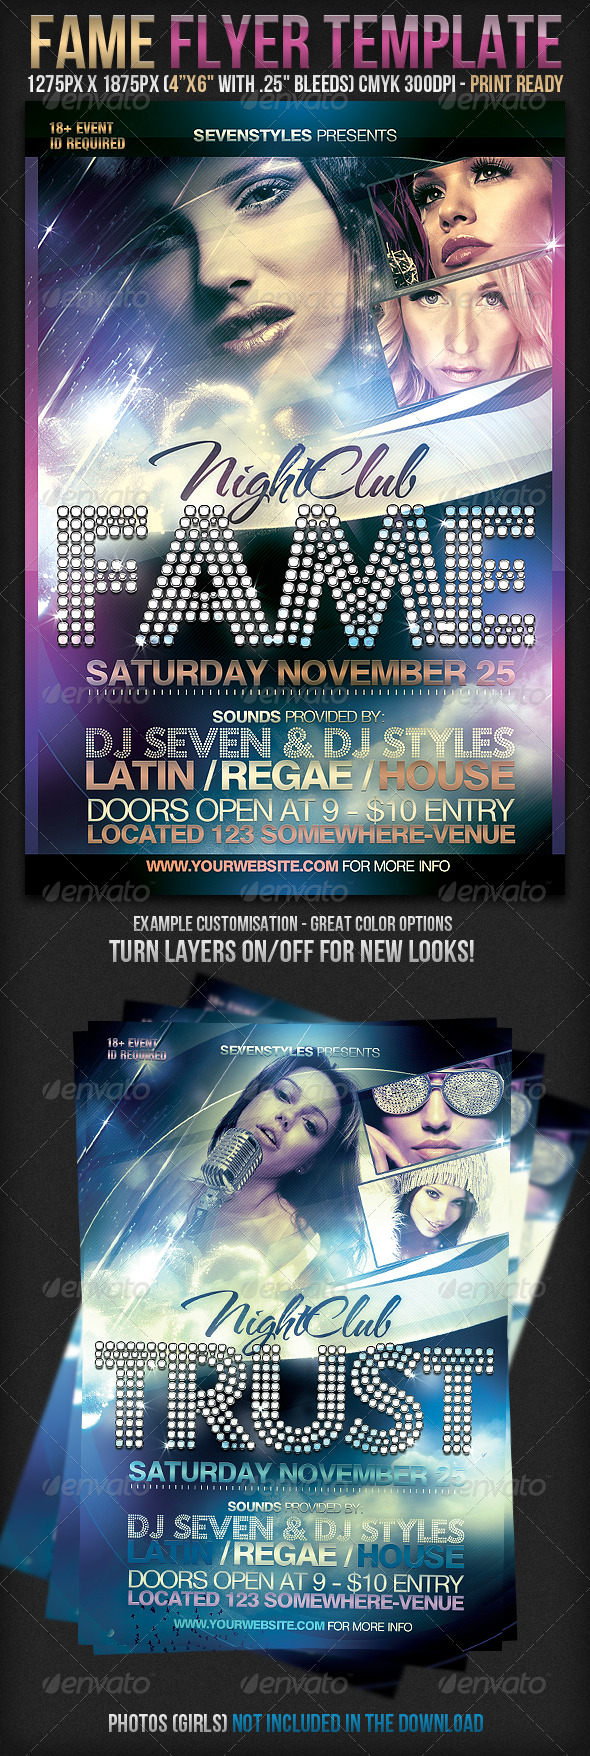 Fame Flyer Template - Clubs & Parties Events